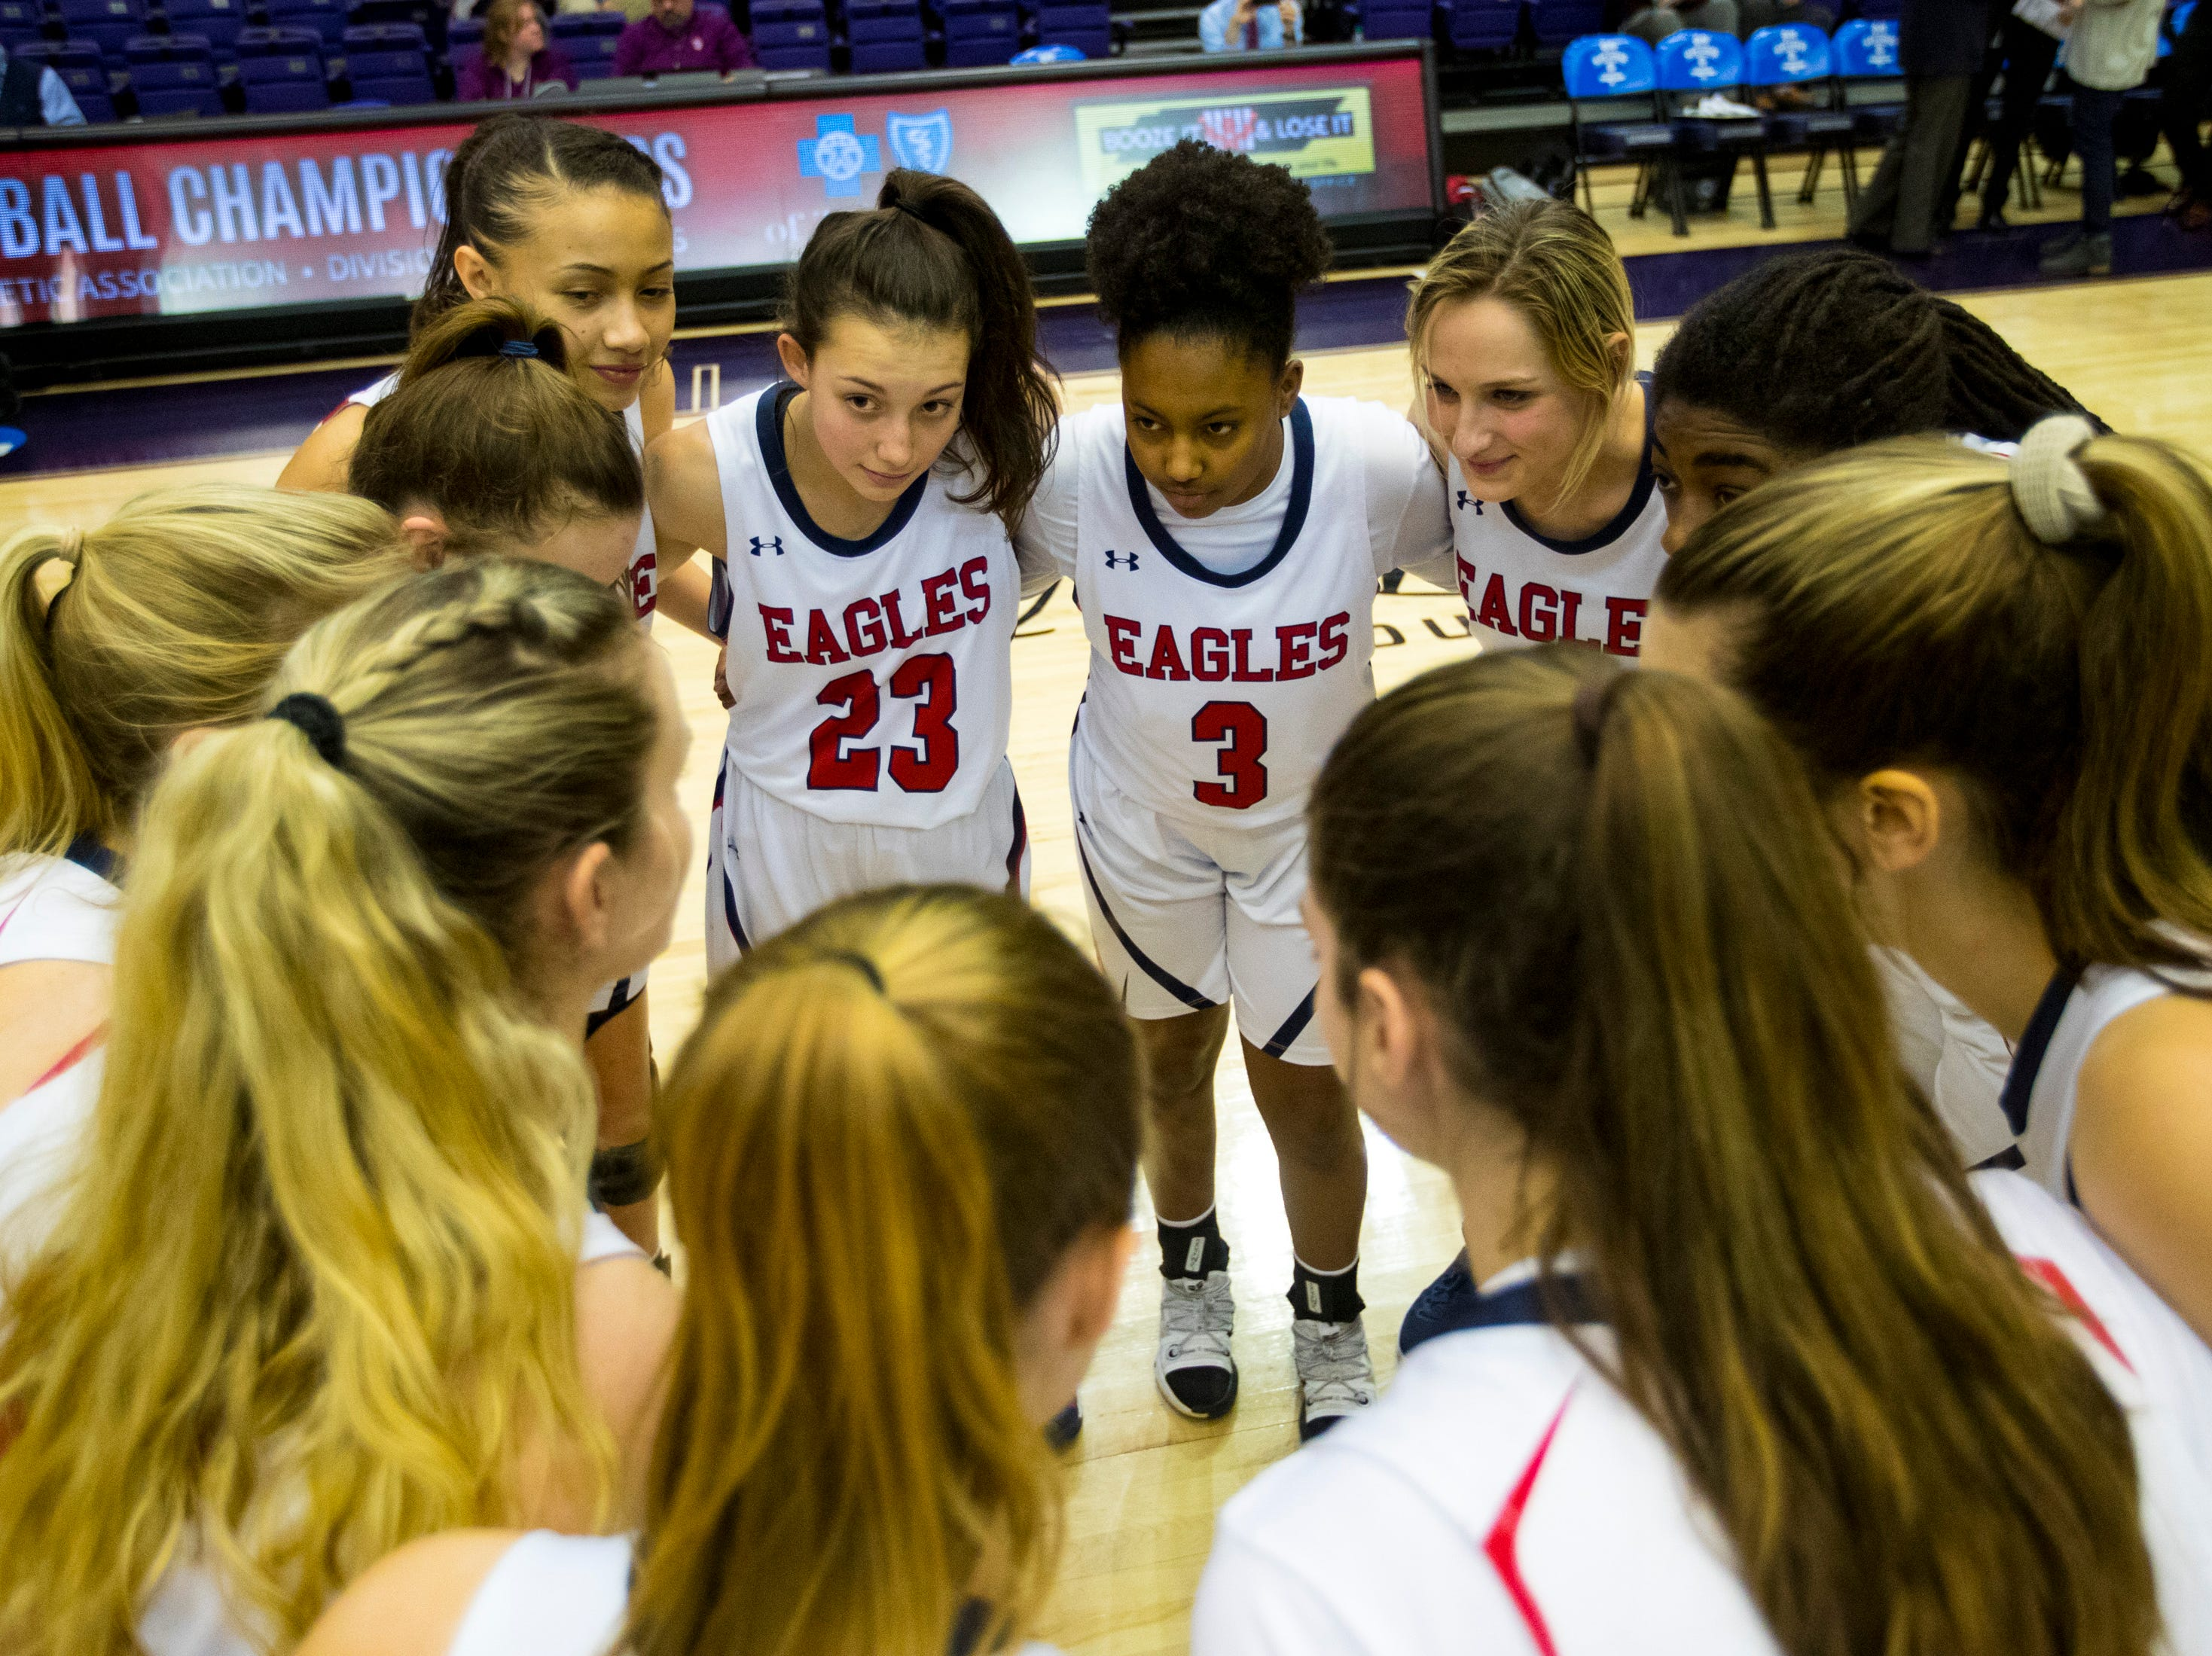 Brentwood Academy's players huddle up before Brentwood Academy's game against Father Ryan in the semifinal round of the TSSAA Division II Class AA State Championships at Lipscomb University's Allen Arena in Nashville on Thursday, Feb. 28, 2019.